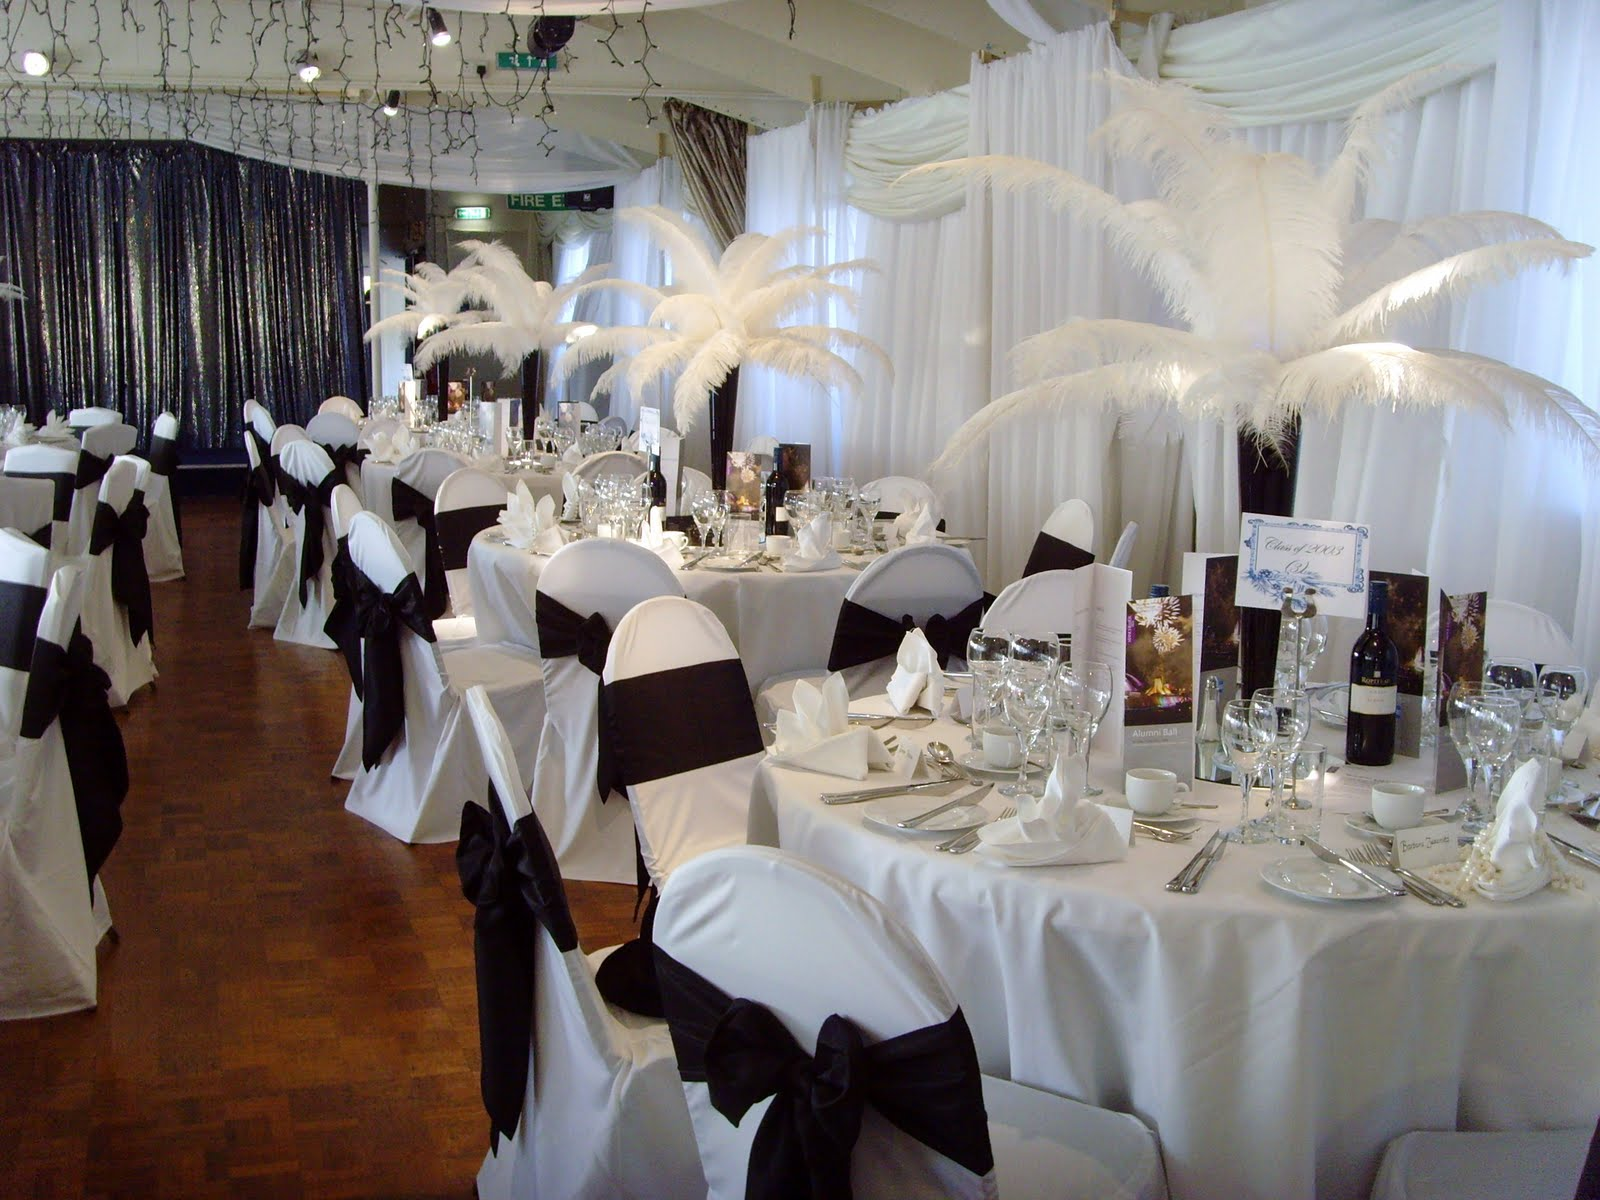 Wedding decoration april 2014 for Wedding venue decoration ideas pictures